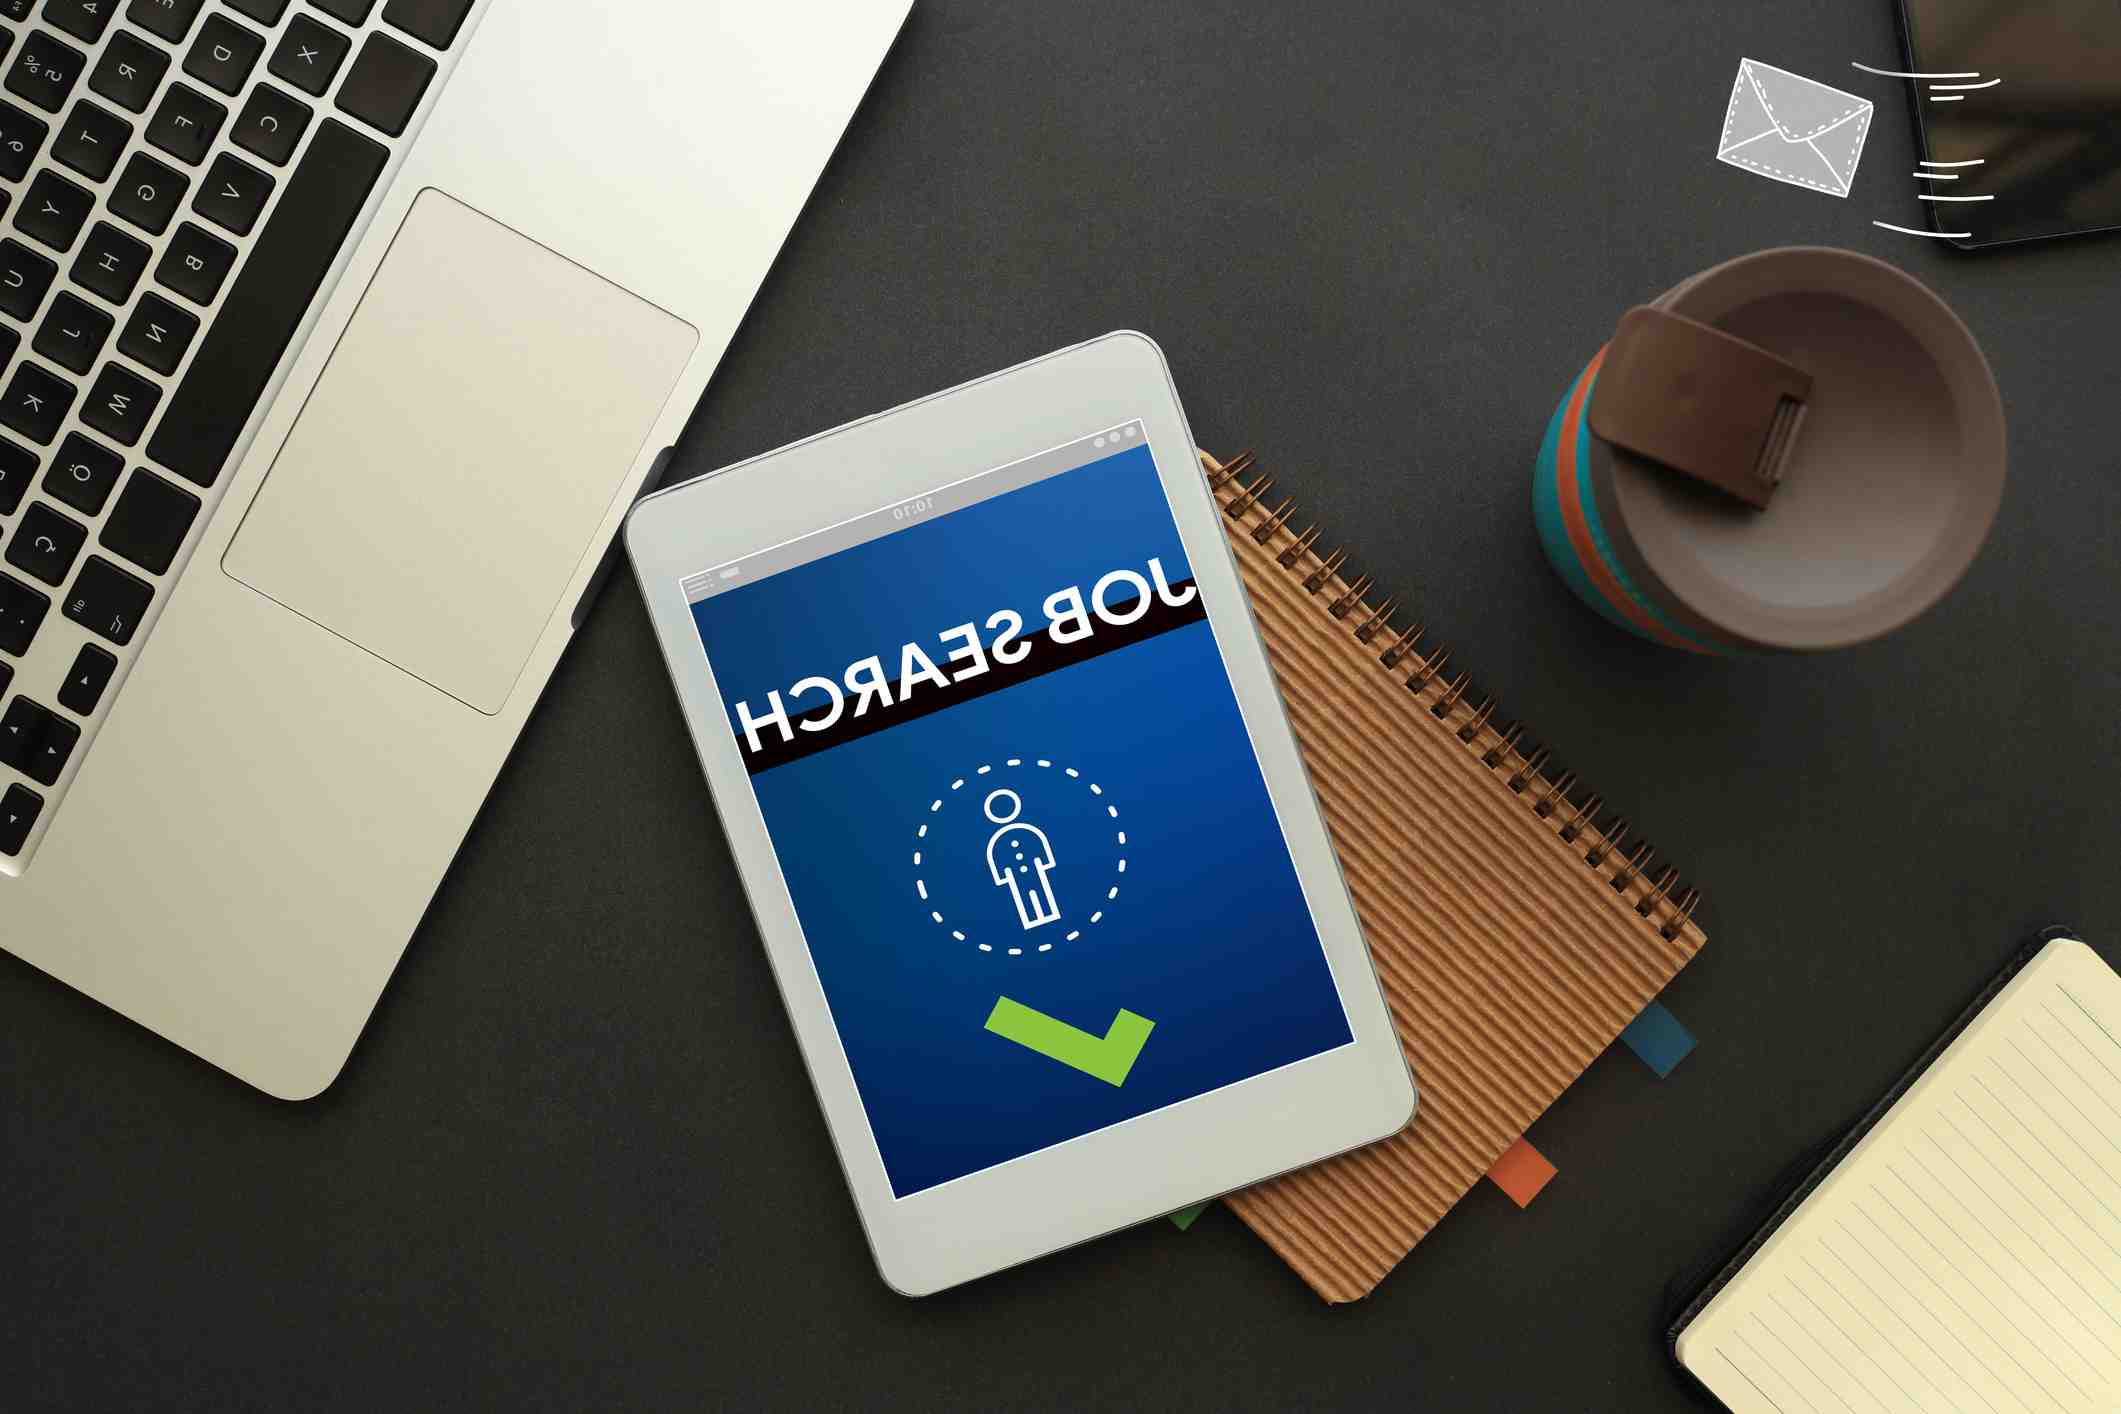 What are the top 10 job search engines?